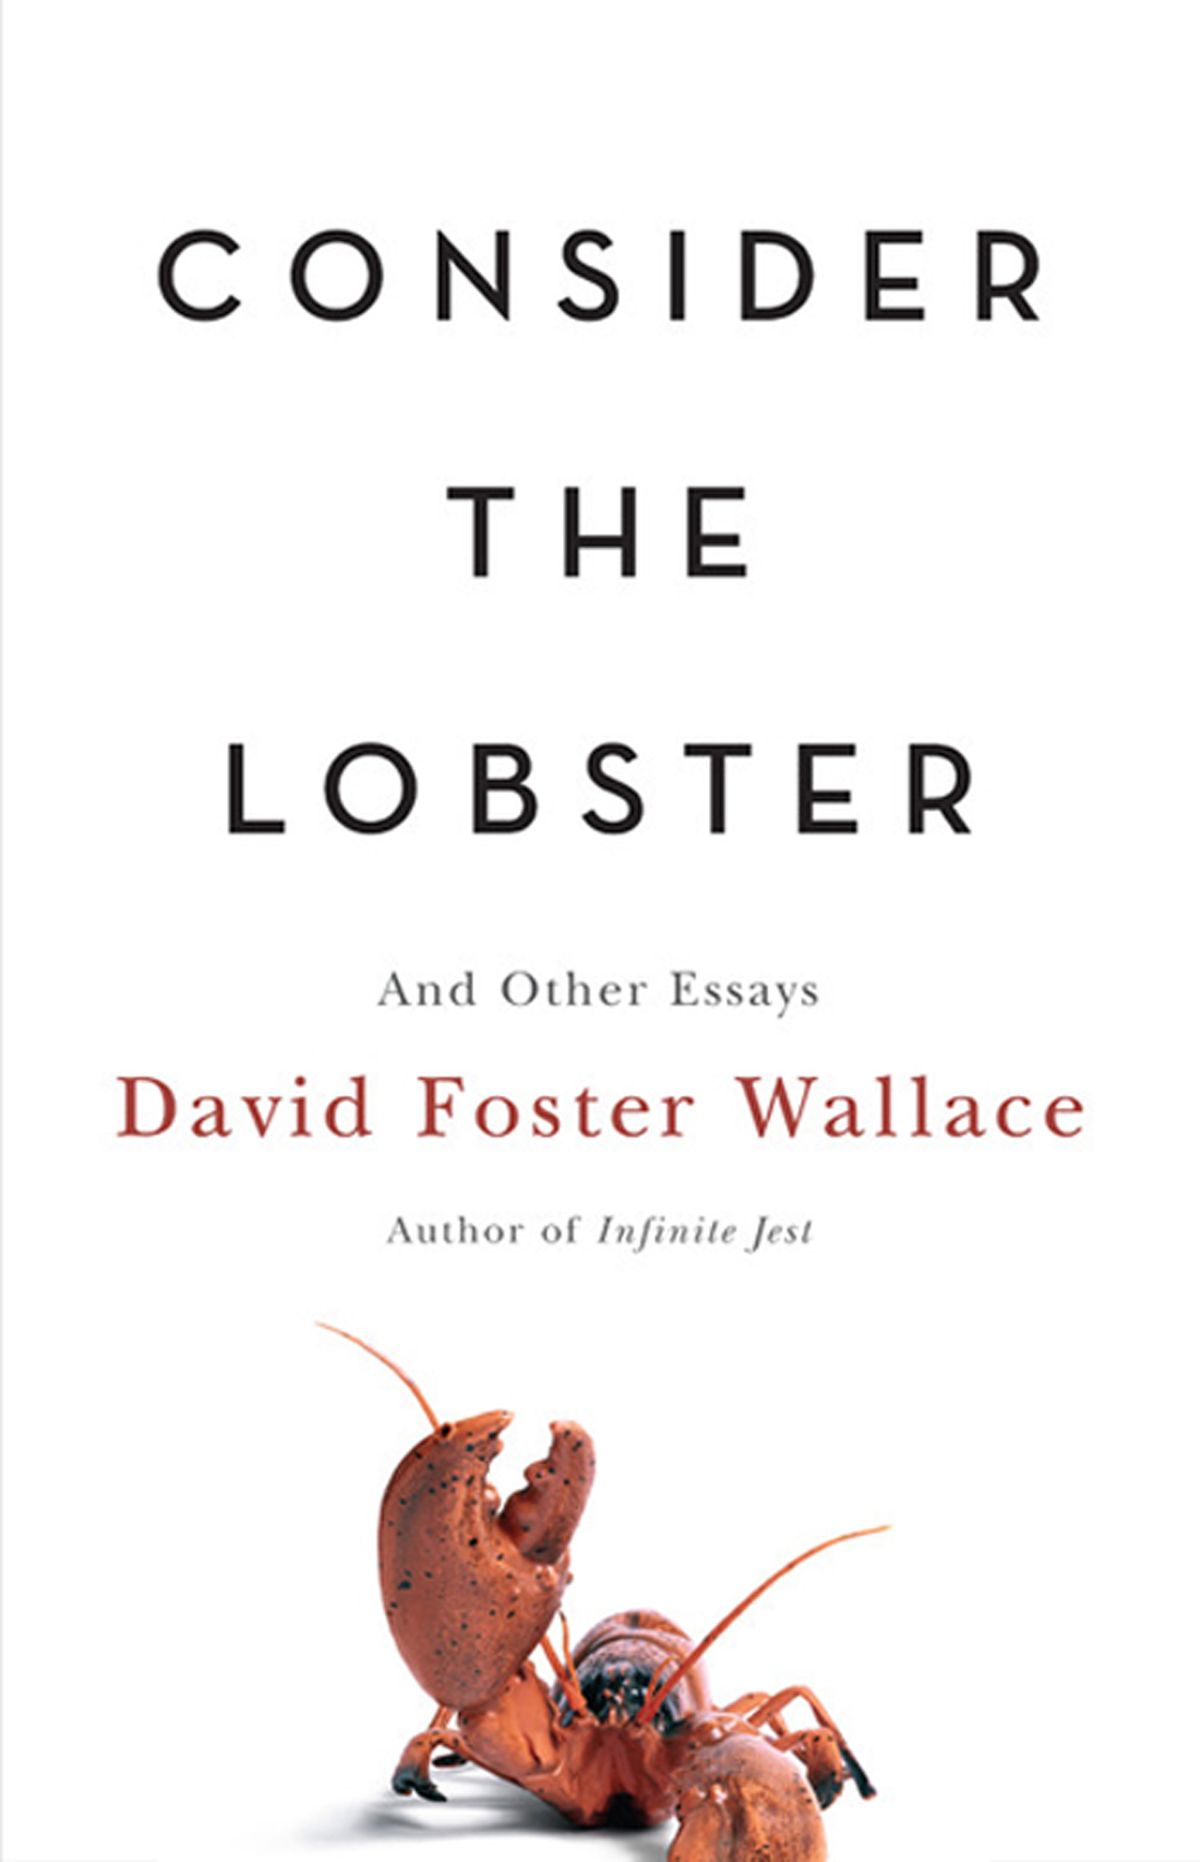 002 Consider The Lobster Essay Exceptional Rhetorical Analysis Review Full